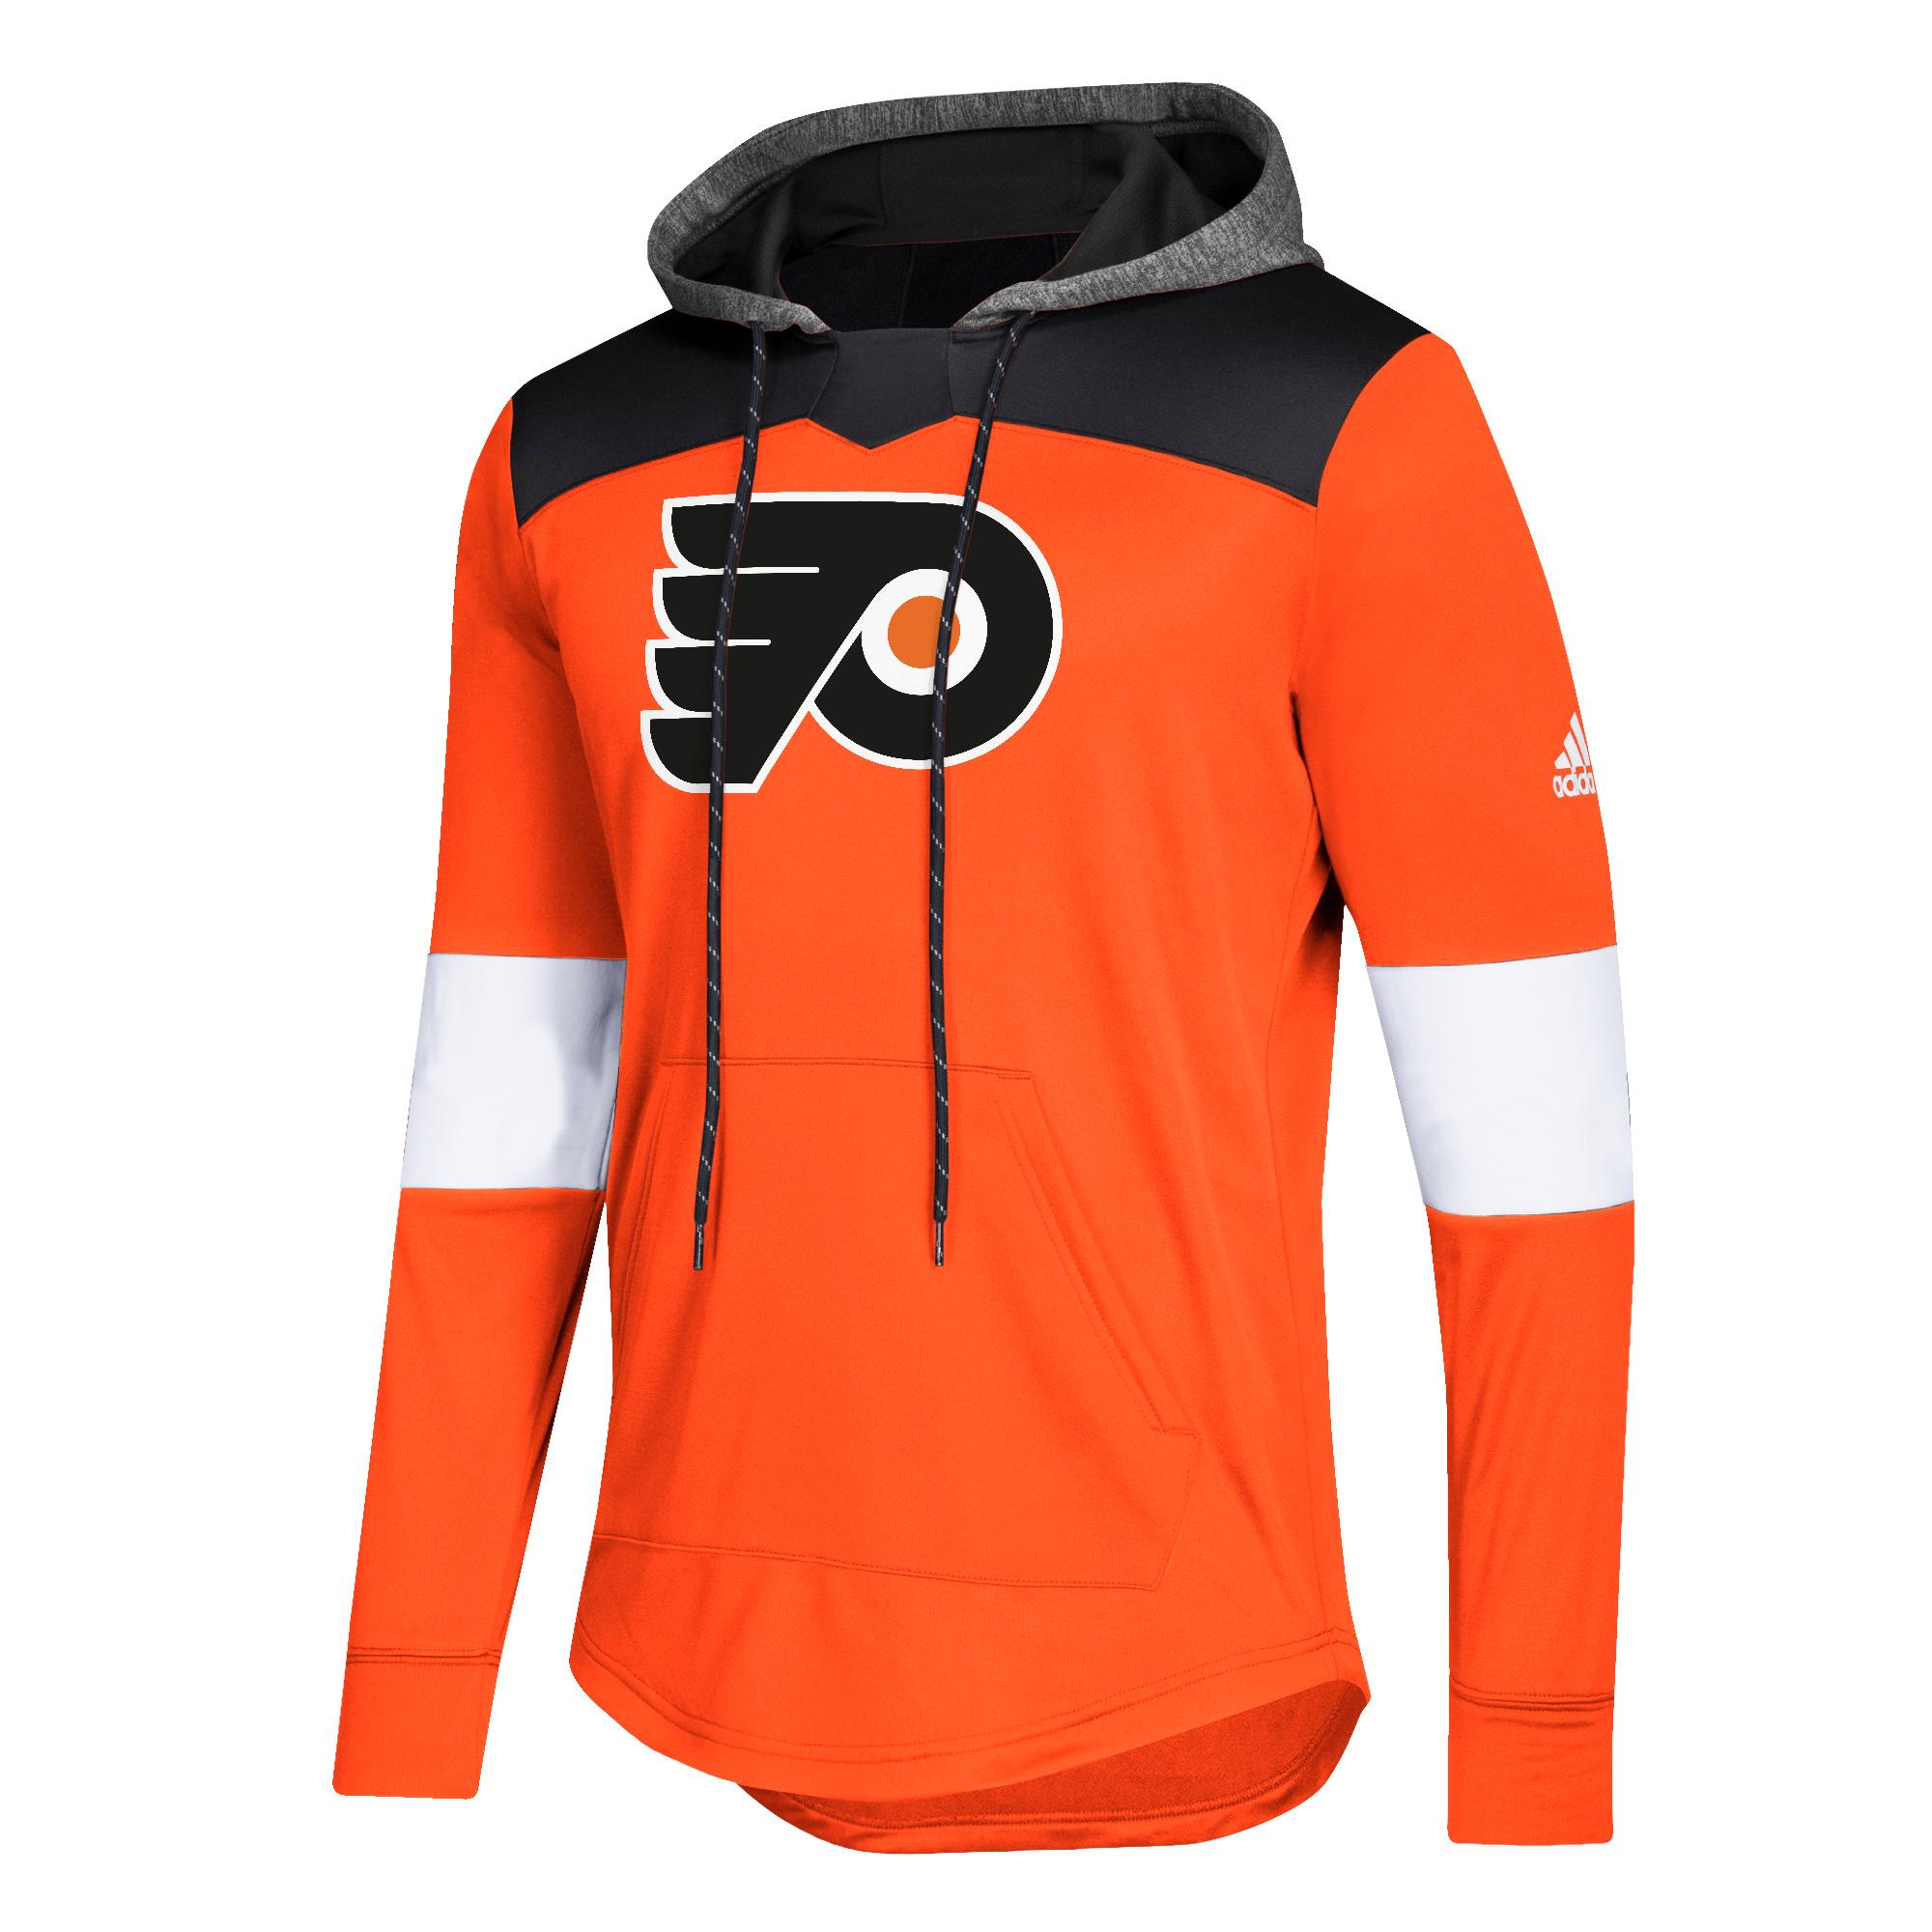 455b5d6cc Philadelphia Flyers Men s 2018 Platinum Jersey Hoodie by Adidas ...